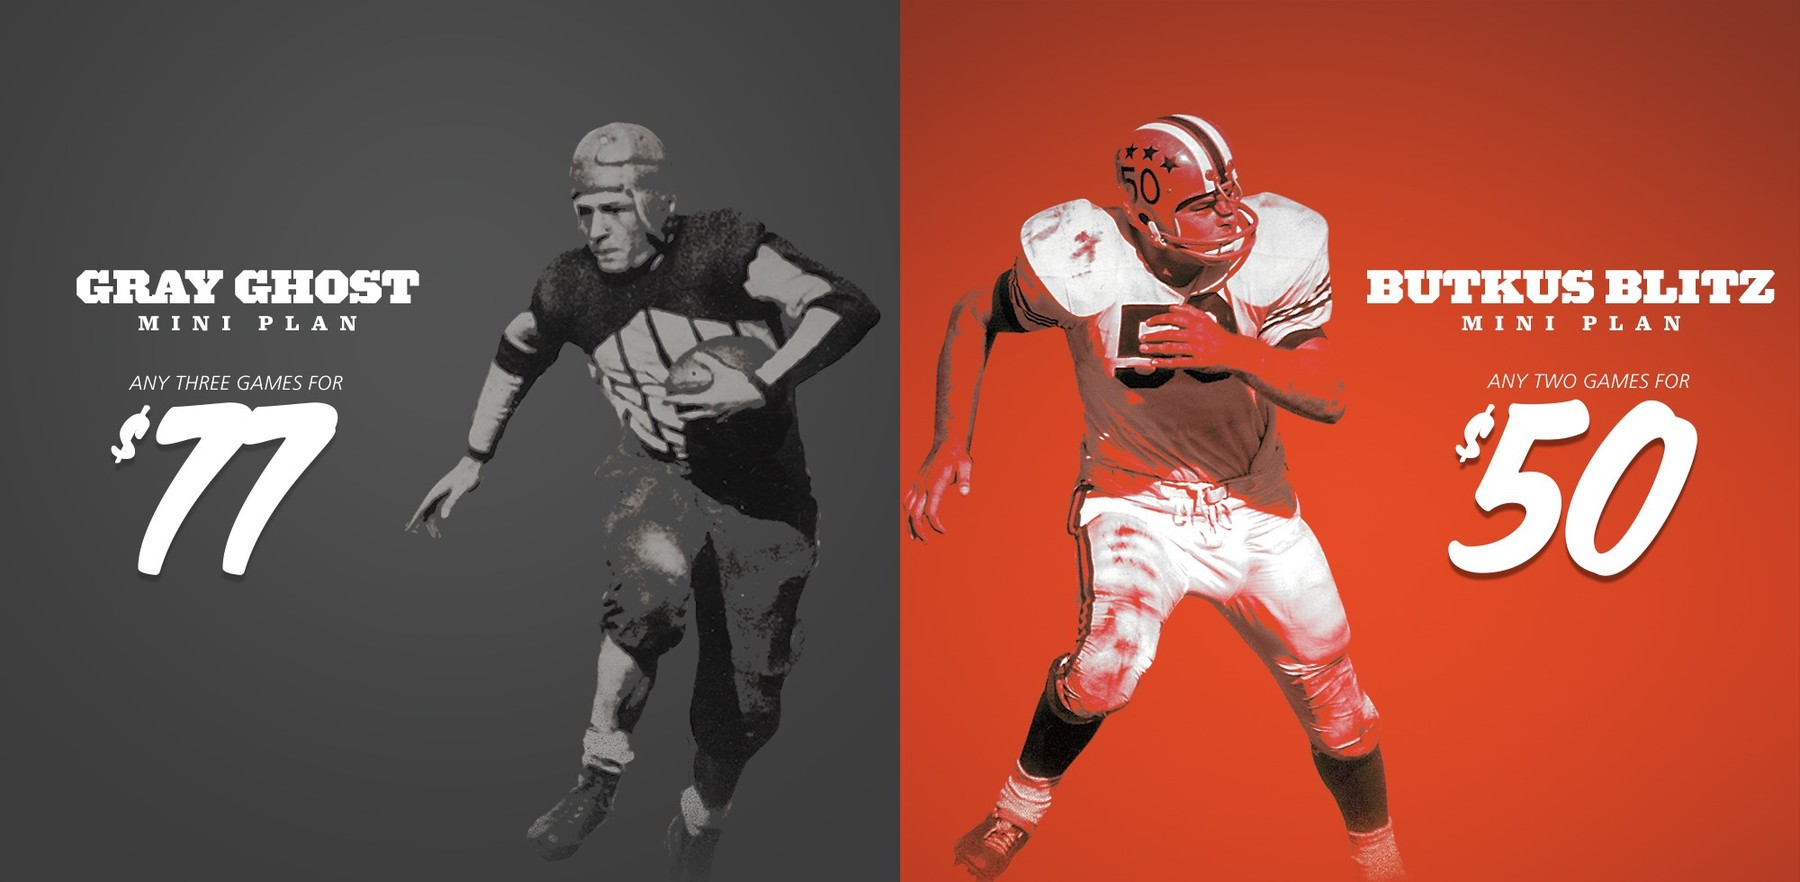 graphic including images of legendary football players Red Grange and Dick Butkis